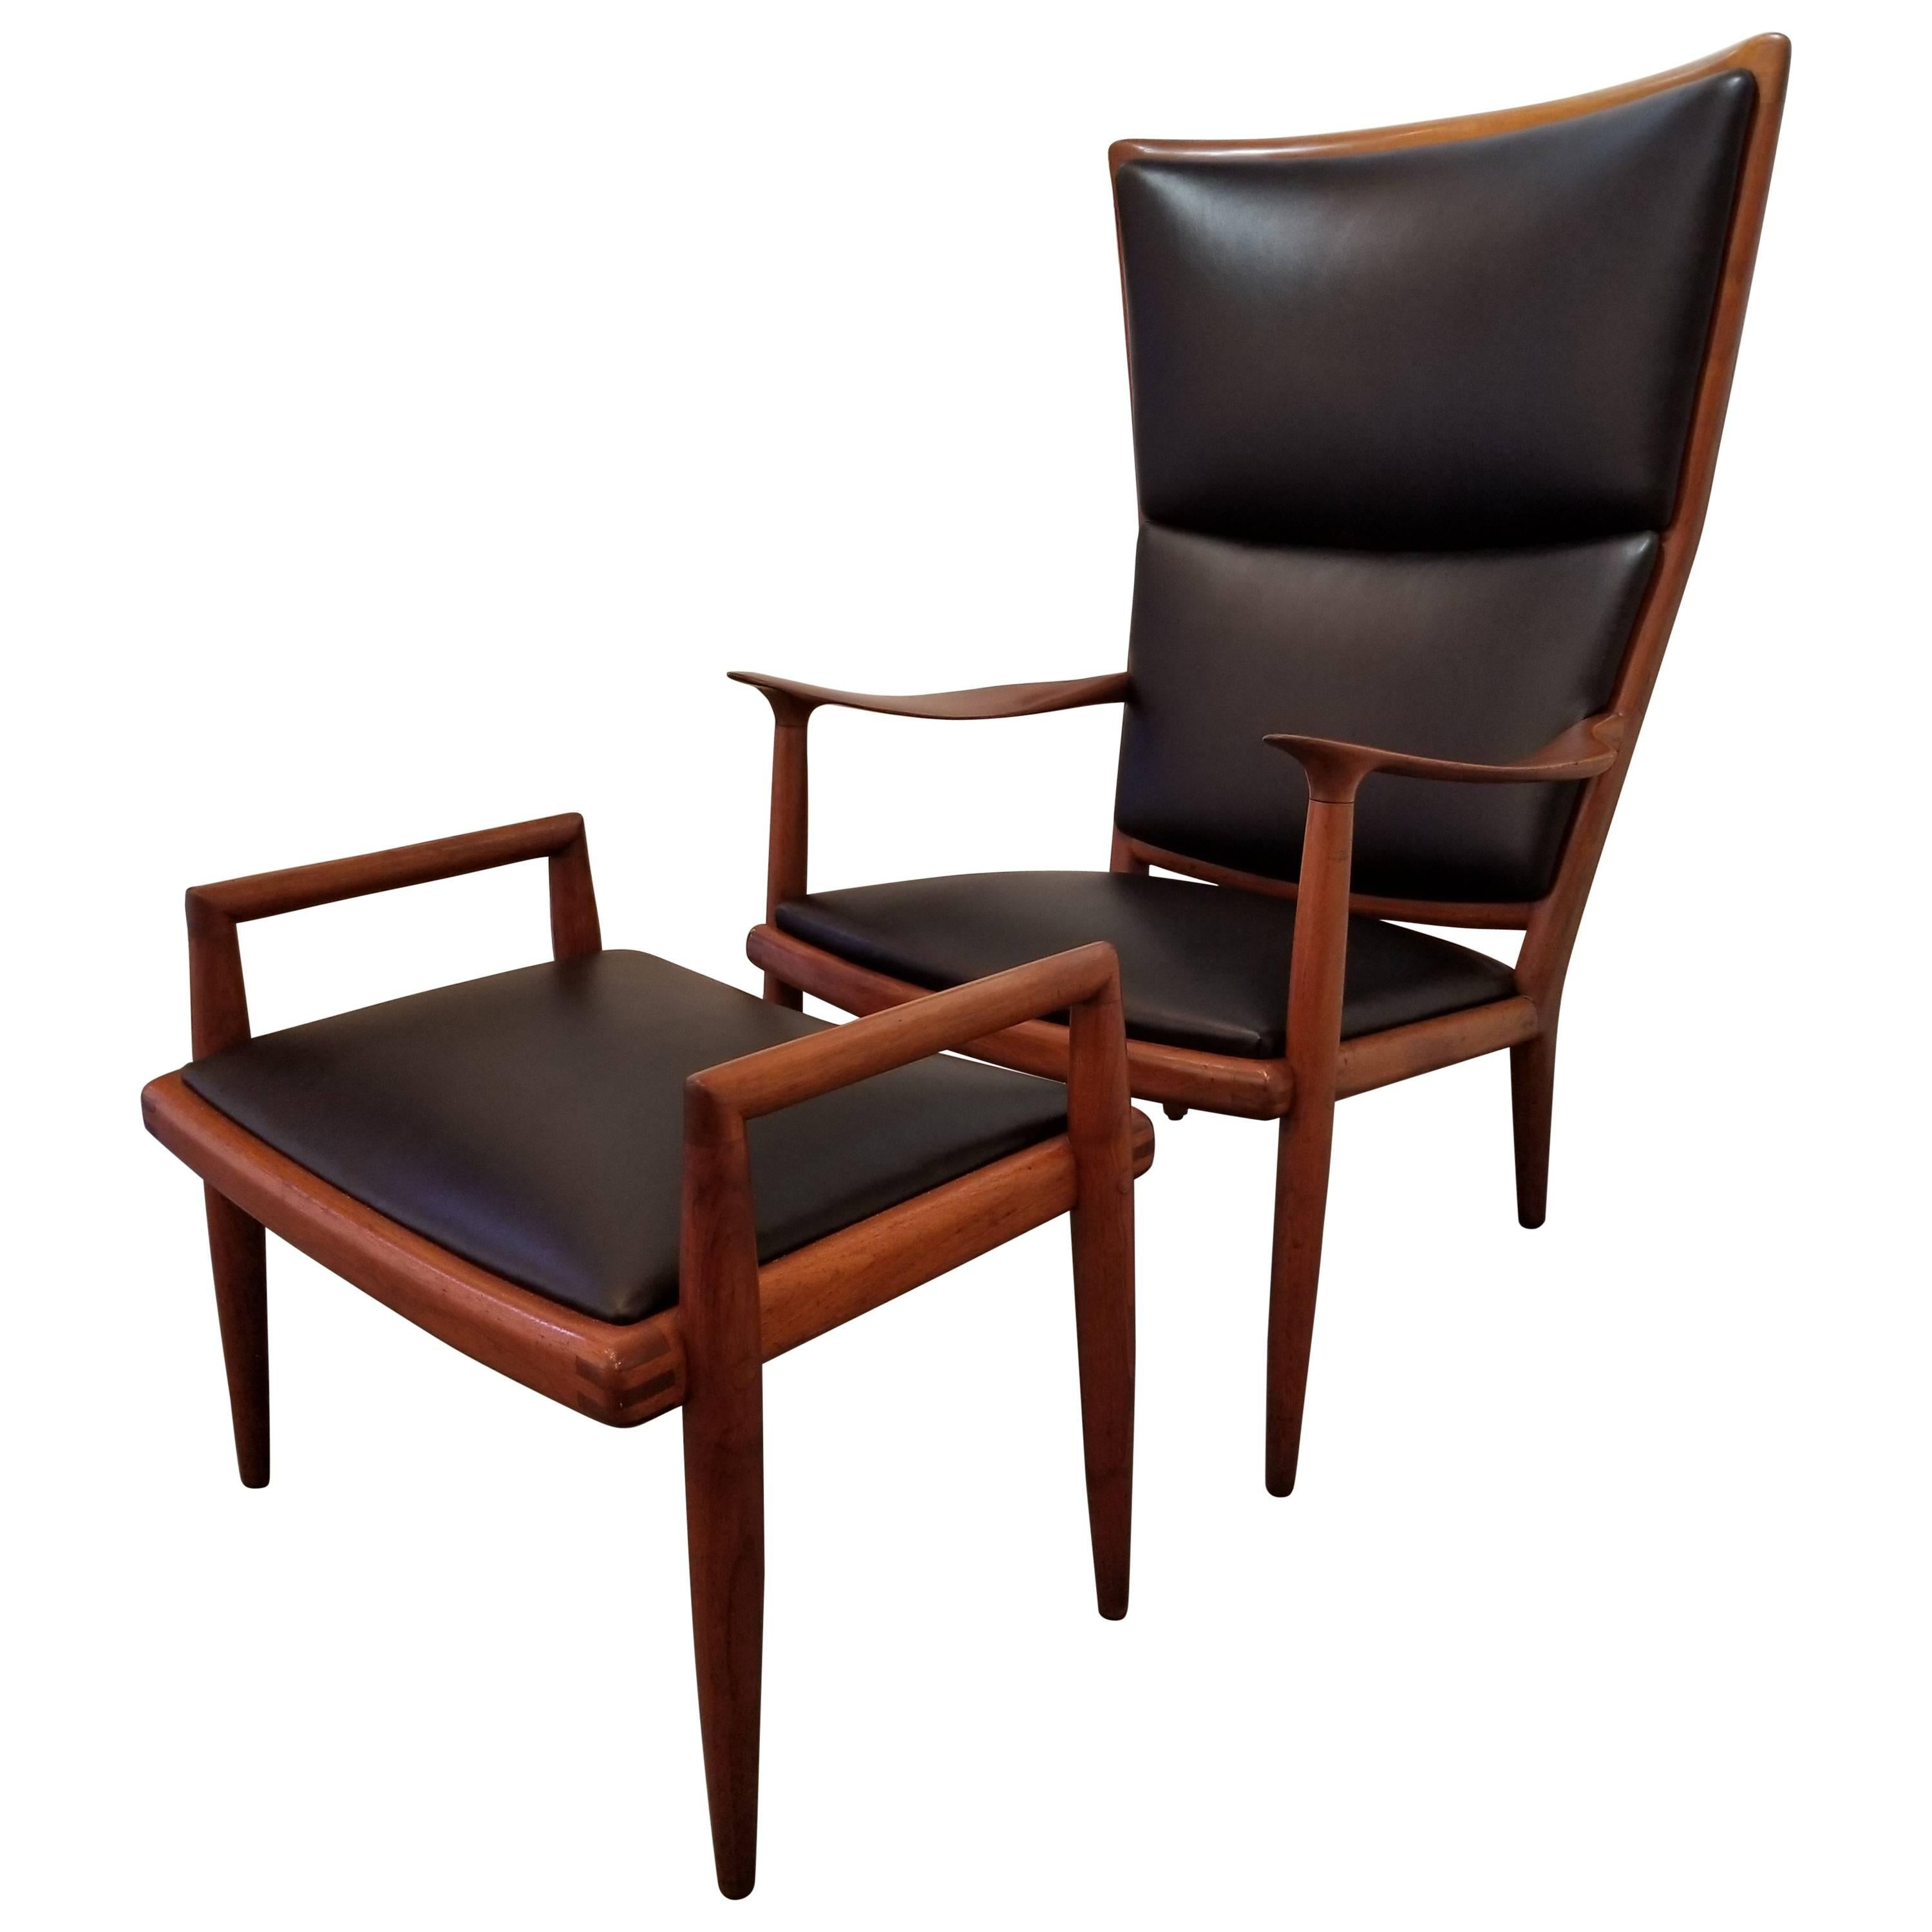 Elegant Sam Maloof Lounge Chair And Ottoman 1